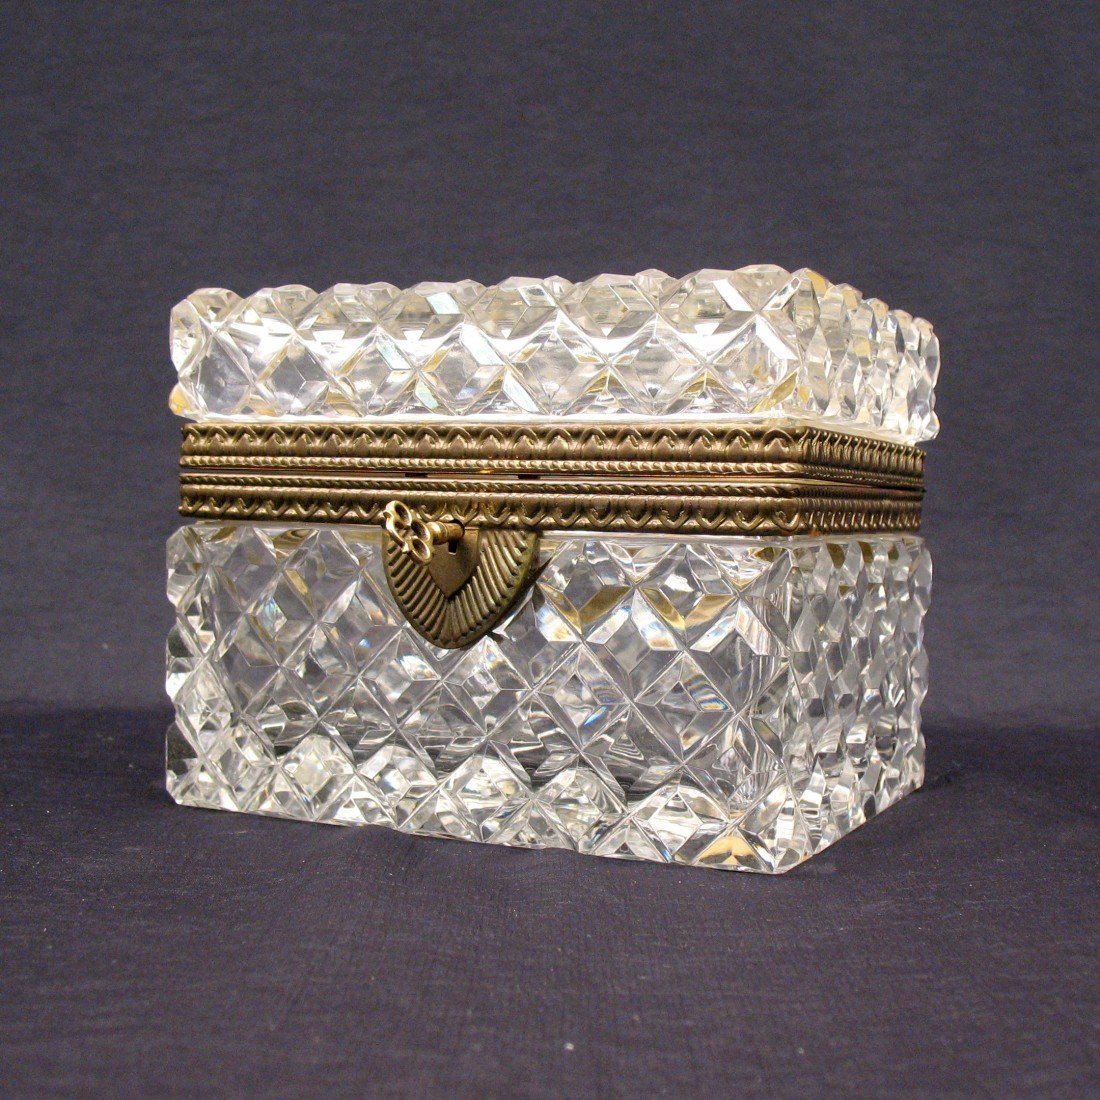 16: Lead crystal and bronze mounted dresser casket, dia